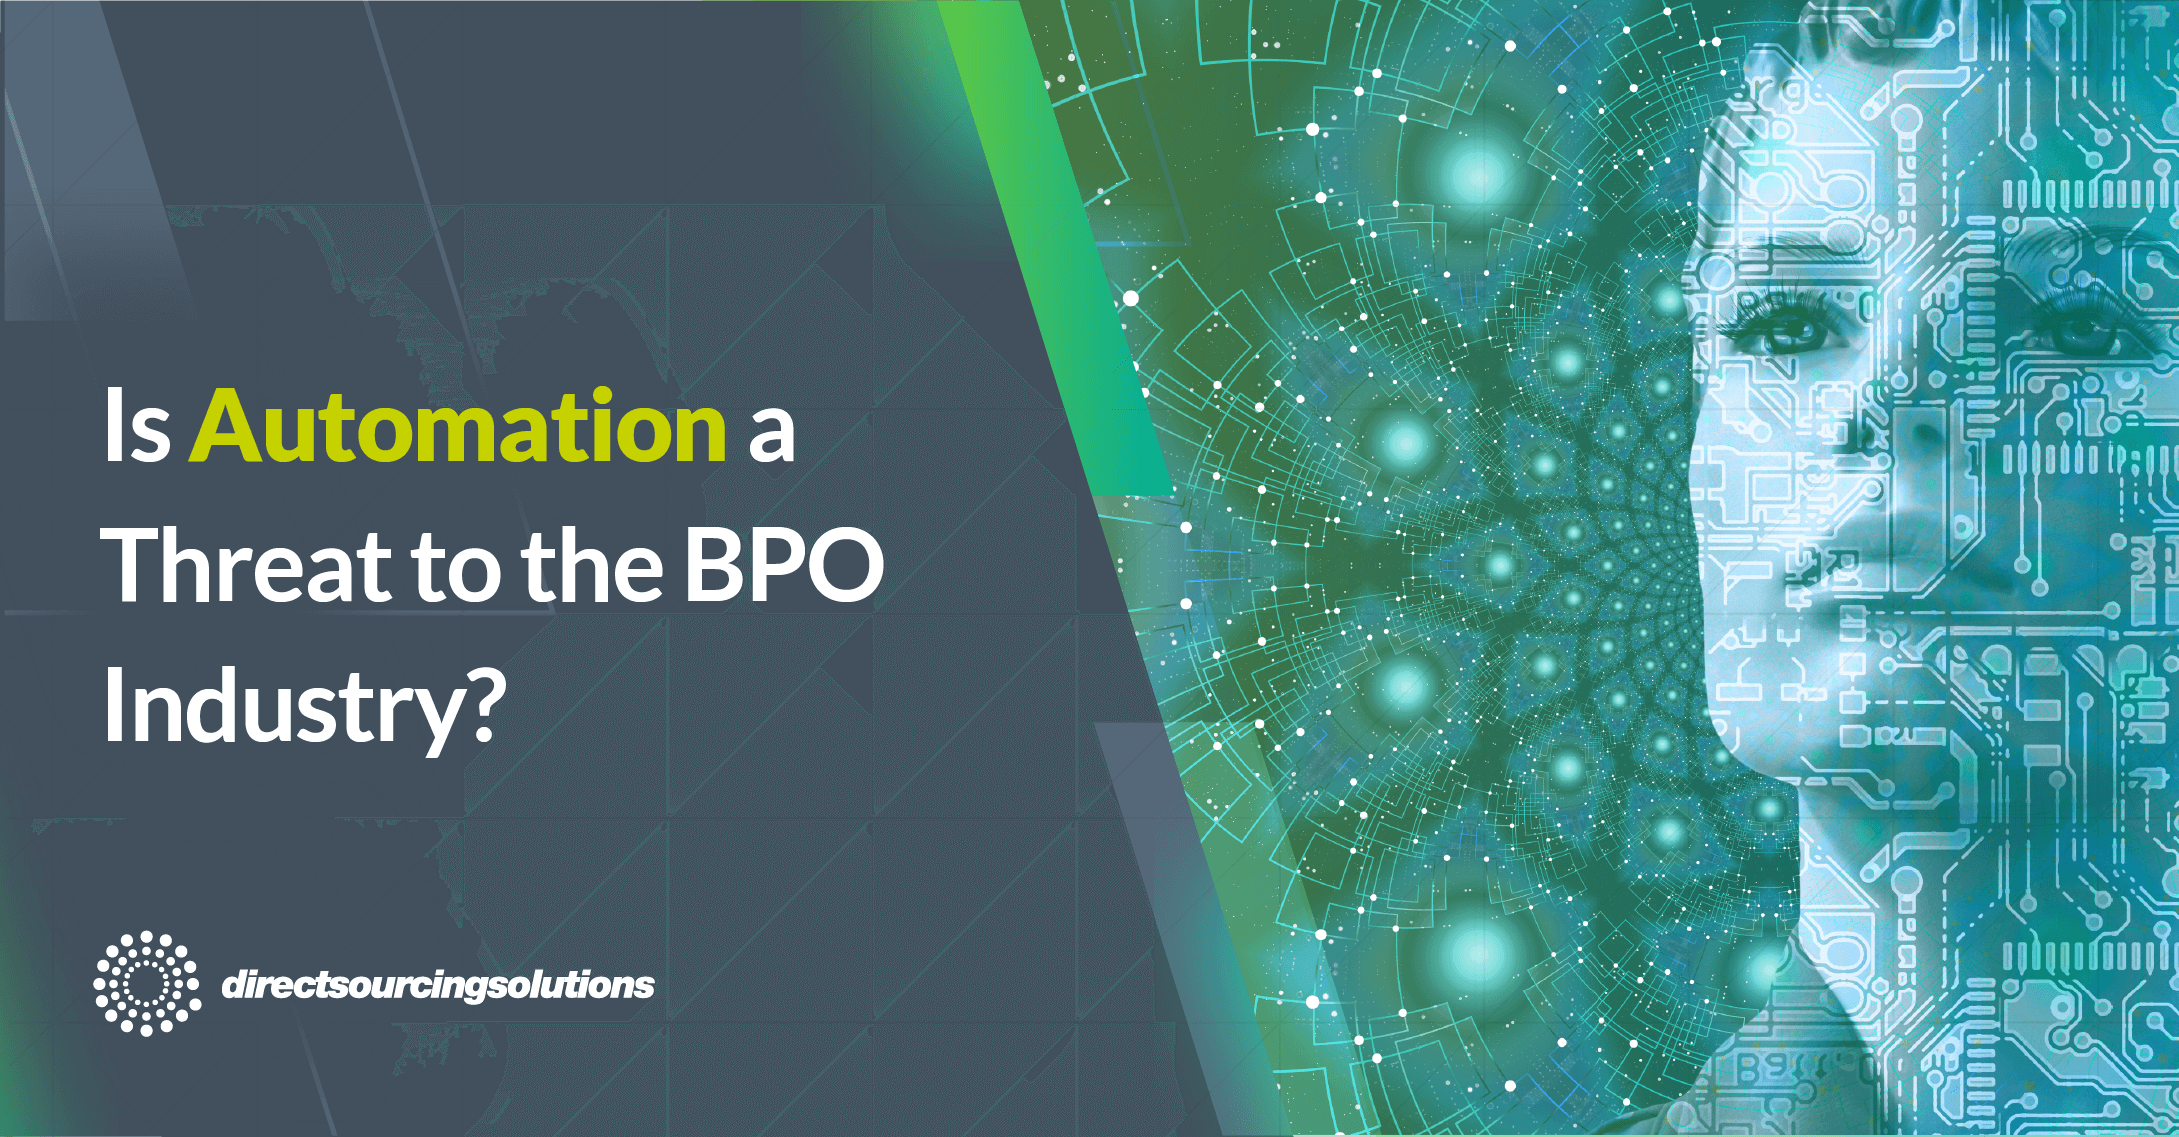 Is Automation a Threat to the BPO Industry